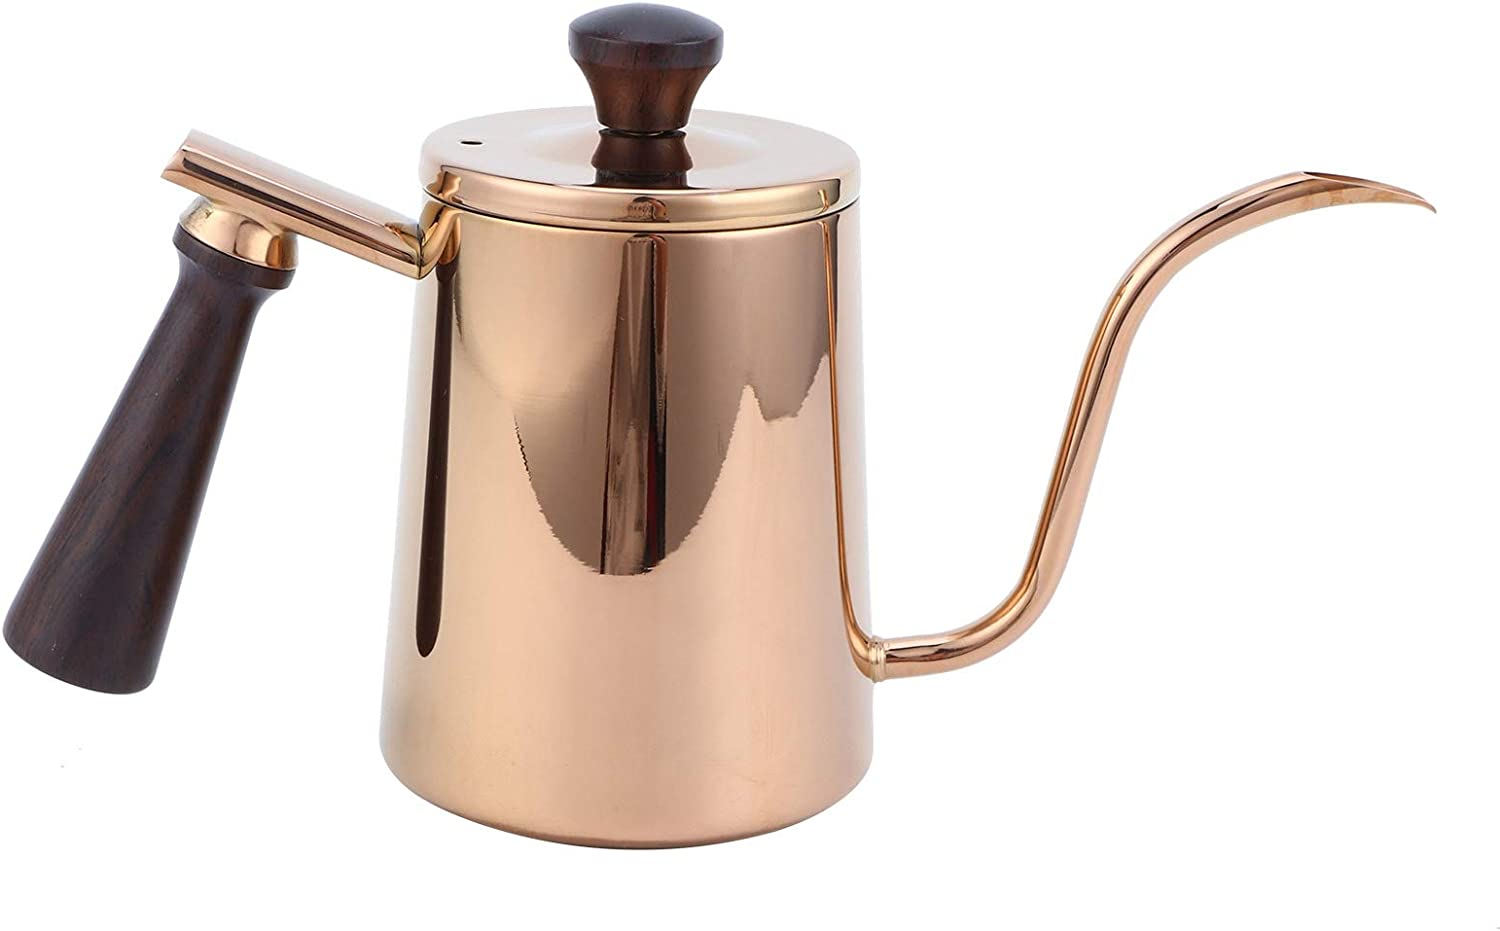 700ml Coffee Kettle Sale Special Price Gooseneck Stainless Spout Max 76% OFF Drip Steel